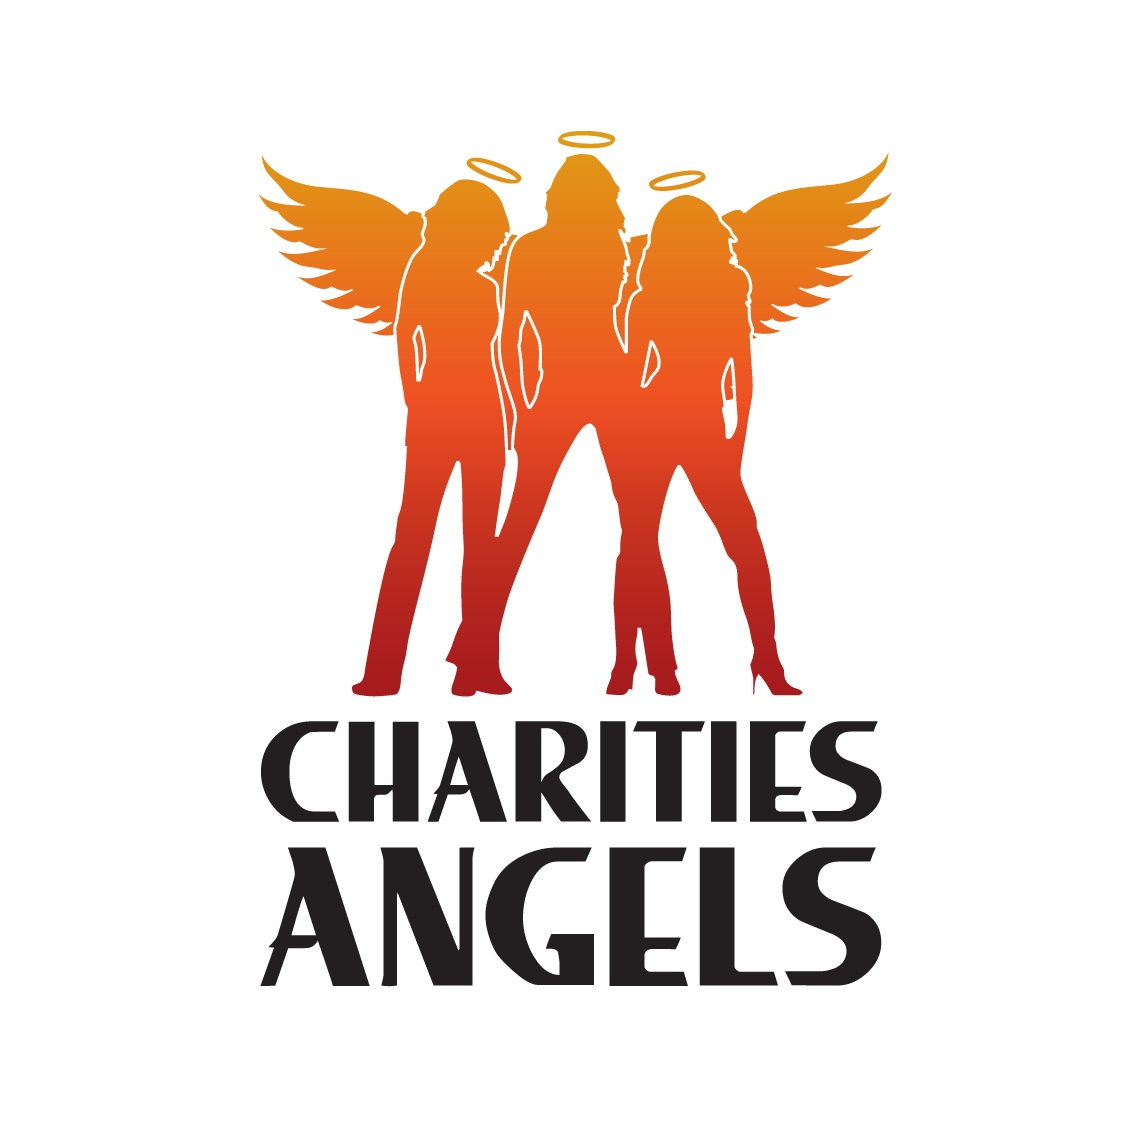 Charities angels logos